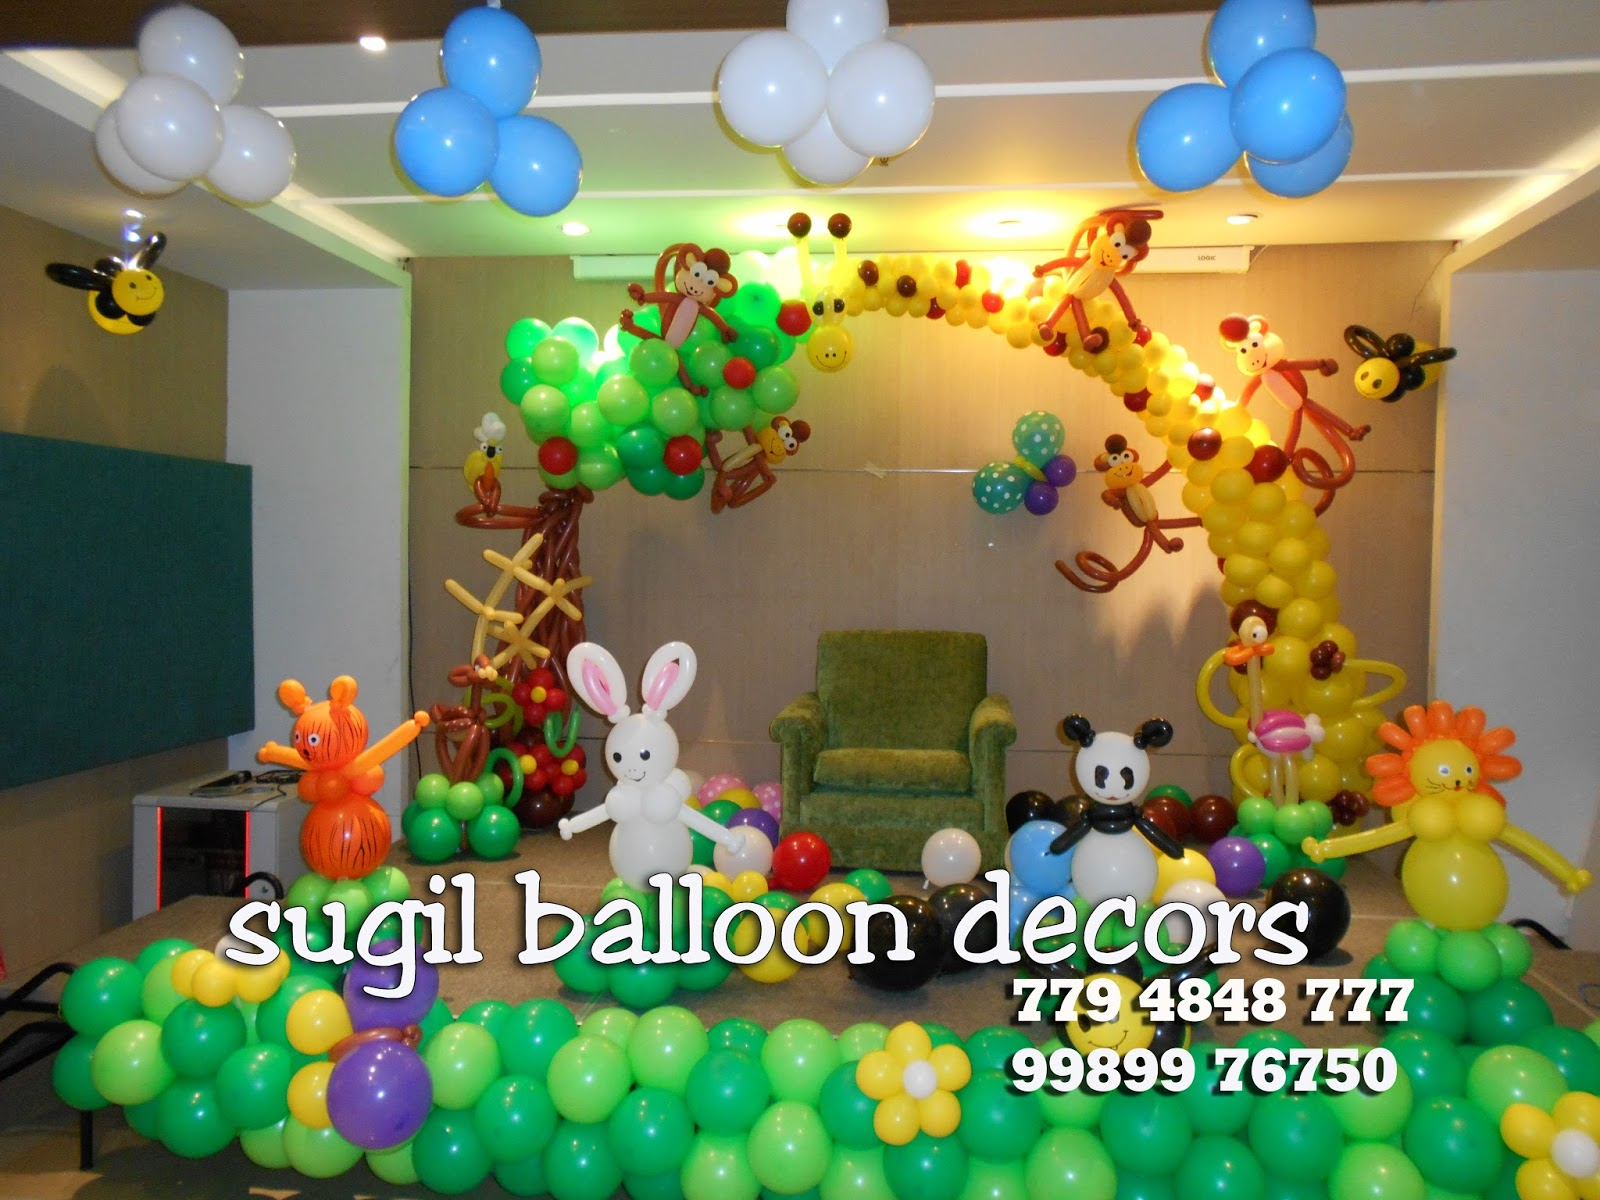 sugil balloon decorations in rajahmundry